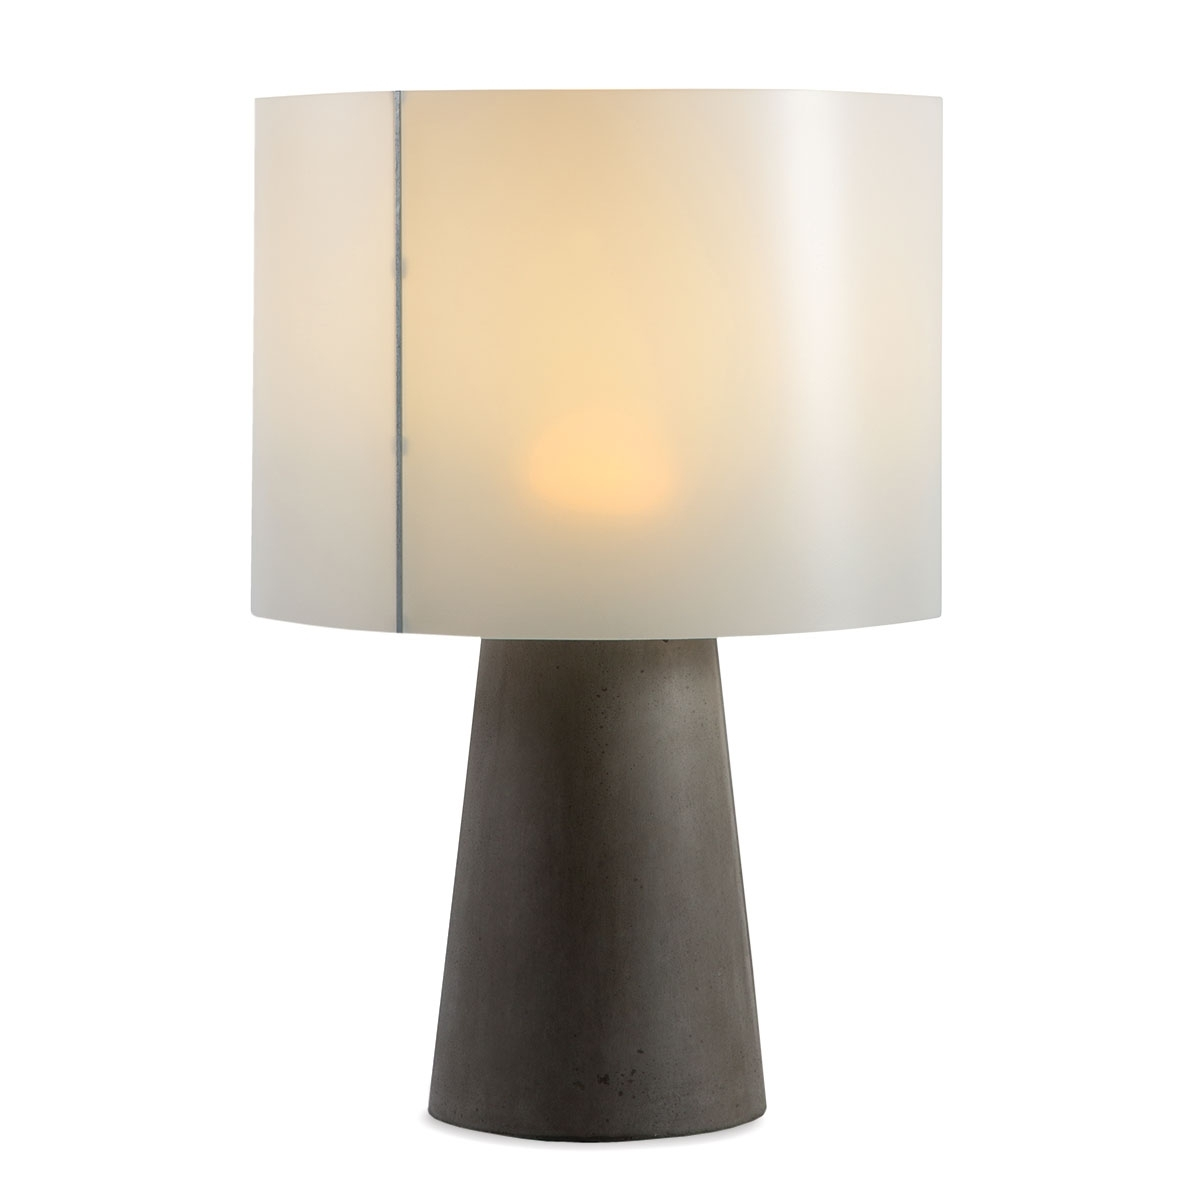 Newest Cordless Living Room Table Lamps Inside Inda Outdoor Cordless Concrete Table Lamp Dark Gray (View 3 of 20)